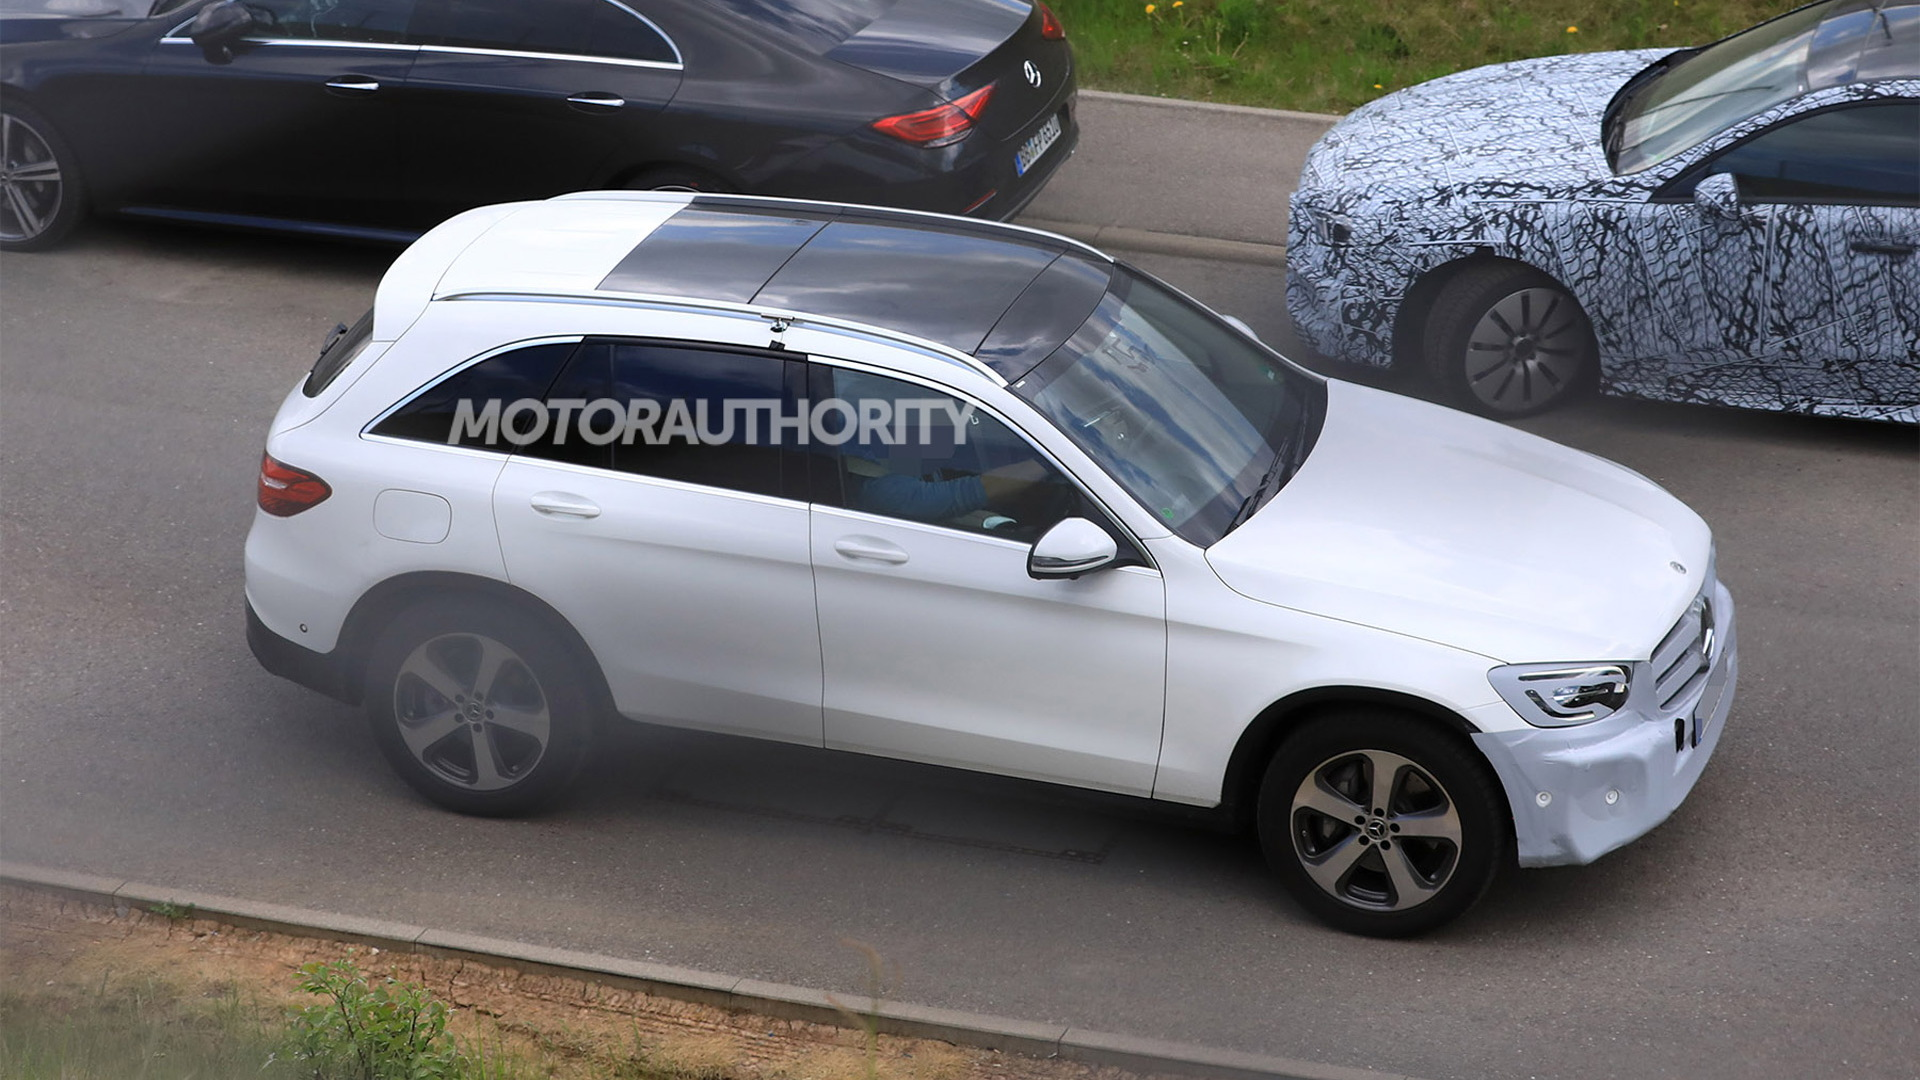 2020 Mercedes-Benz GLC facelift spy shots - Image via S. Baldauf/SB-Medien